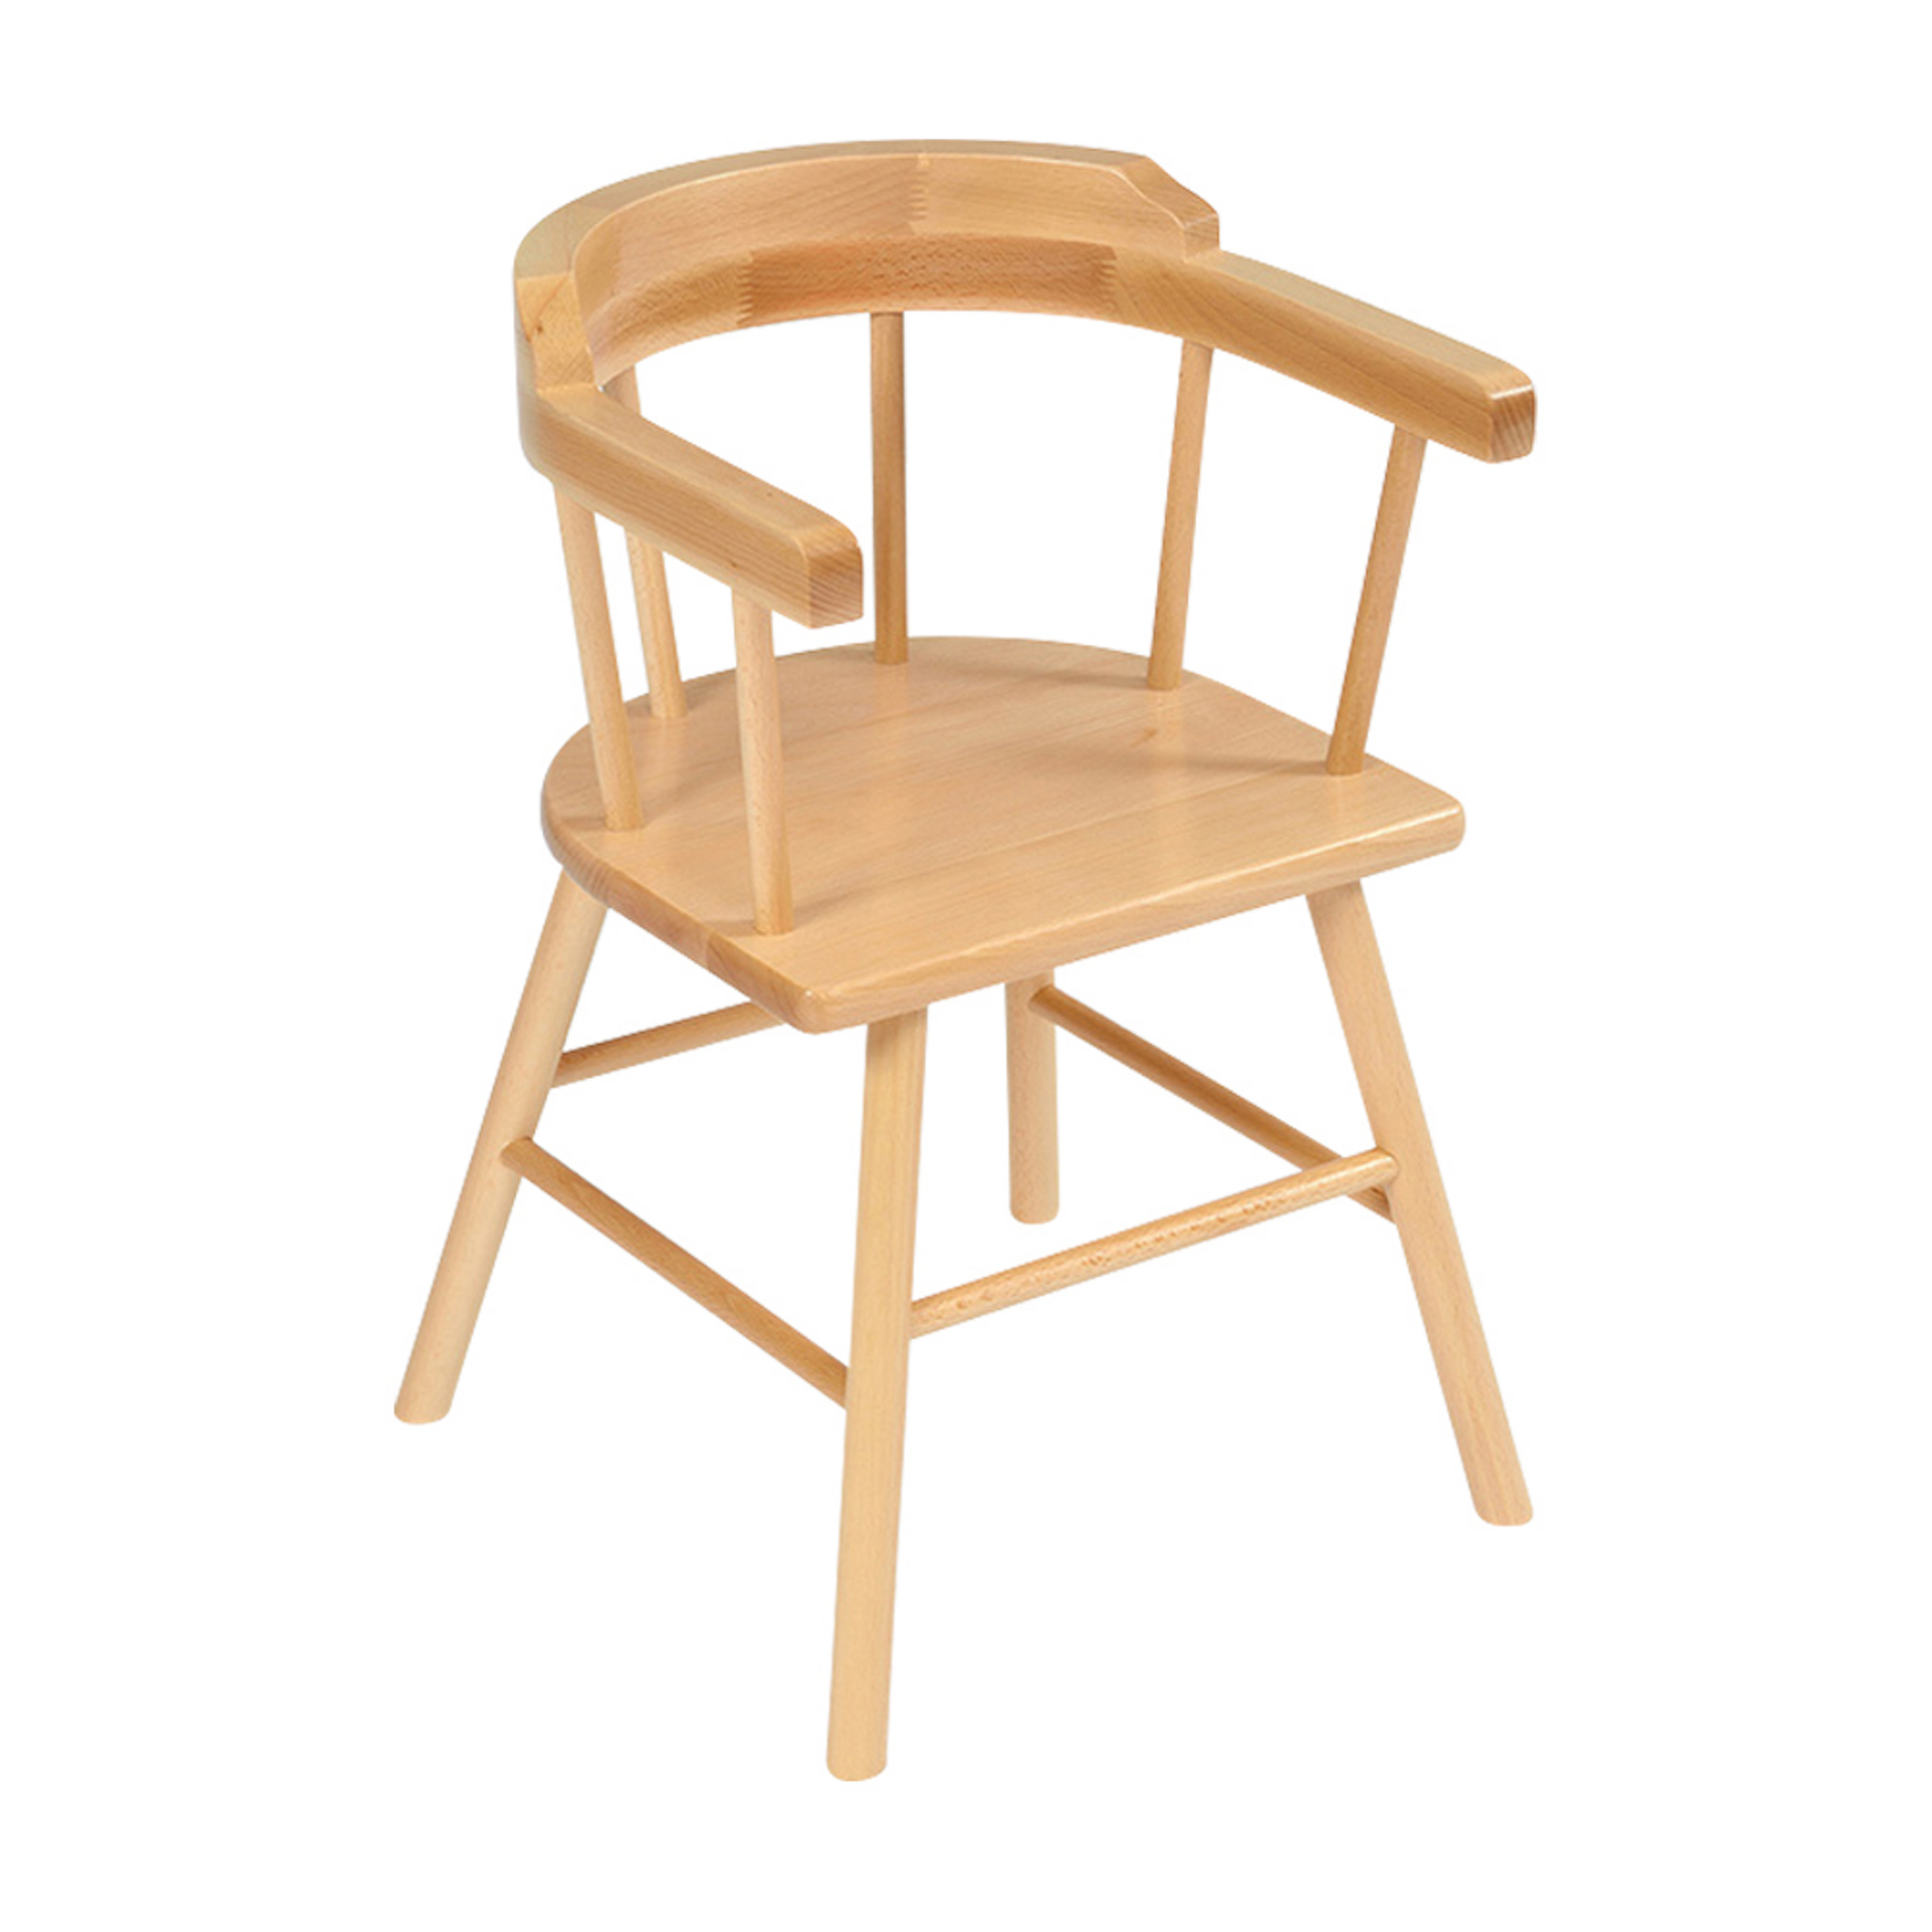 Captainu0027s Chair Pack of two  sc 1 st  Hope Education & Captainu0027s Chair | Hope Education